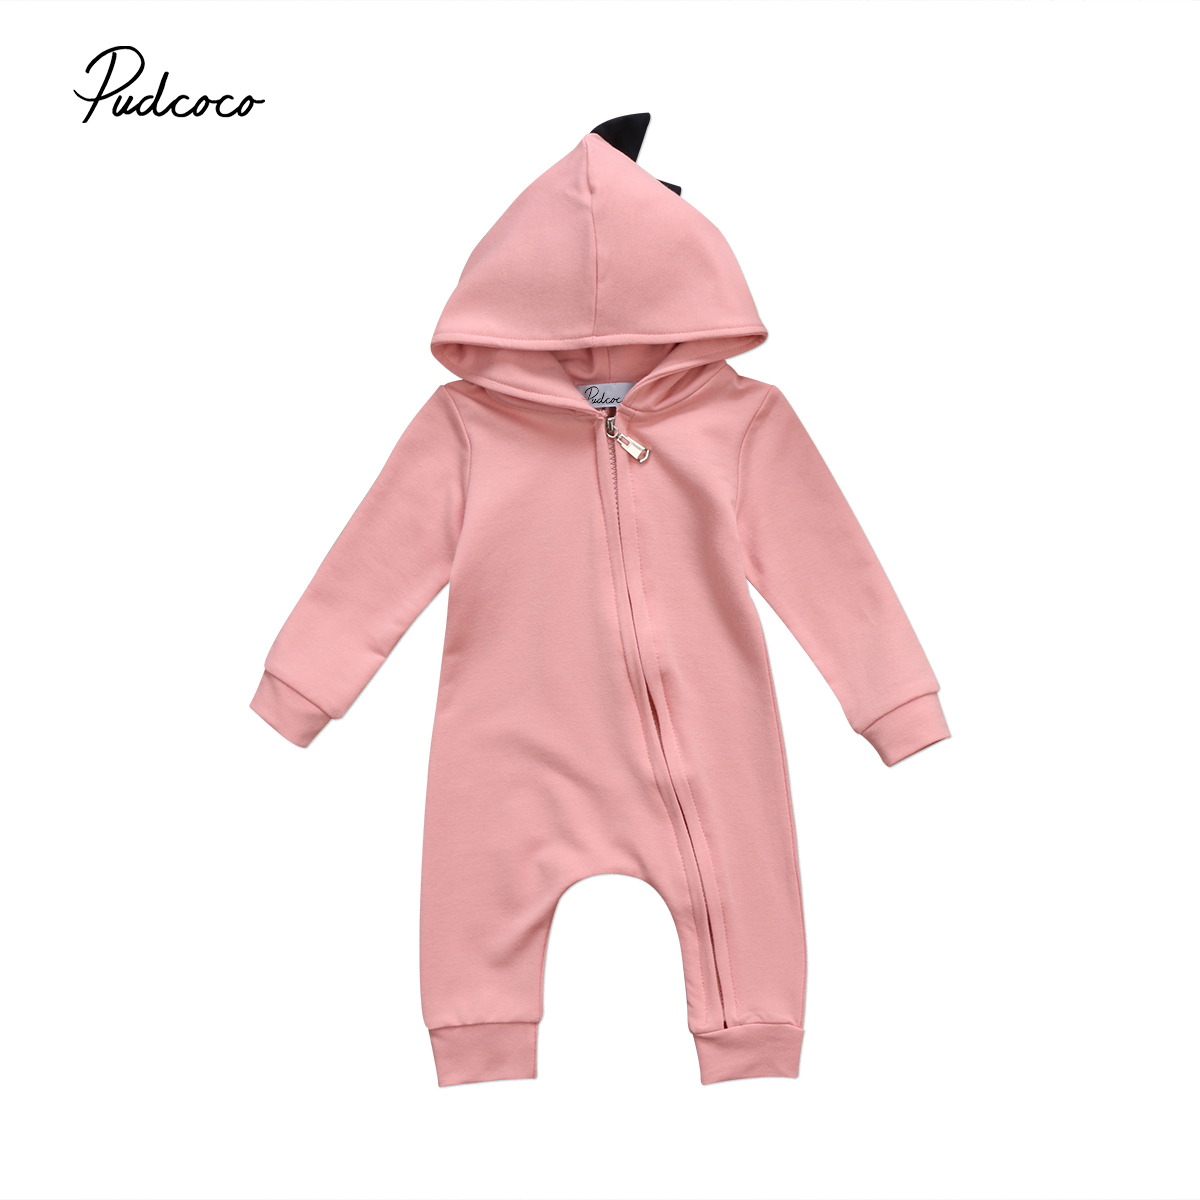 Baby Clothing Baby Boy Girl Long sleeve Hooded Romper Spring Fall Dinosaur Junpsuits Baby Cotton Home Outfit Clothes 0-2Y